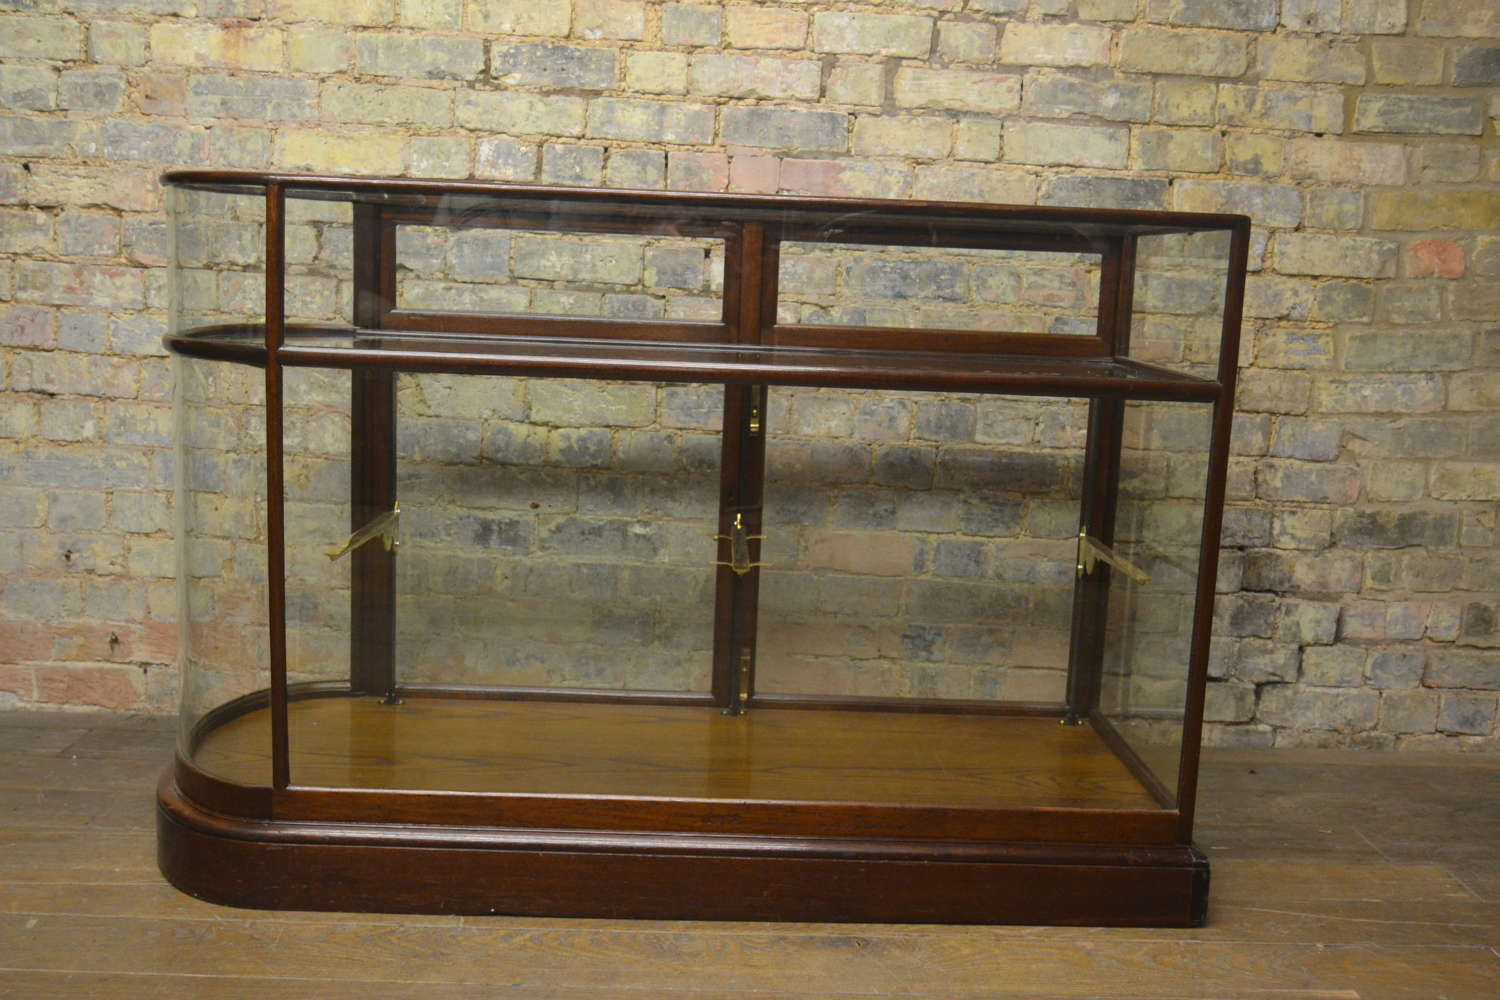 Fabulous Victorian Mahogany Jeweller's Display Counter